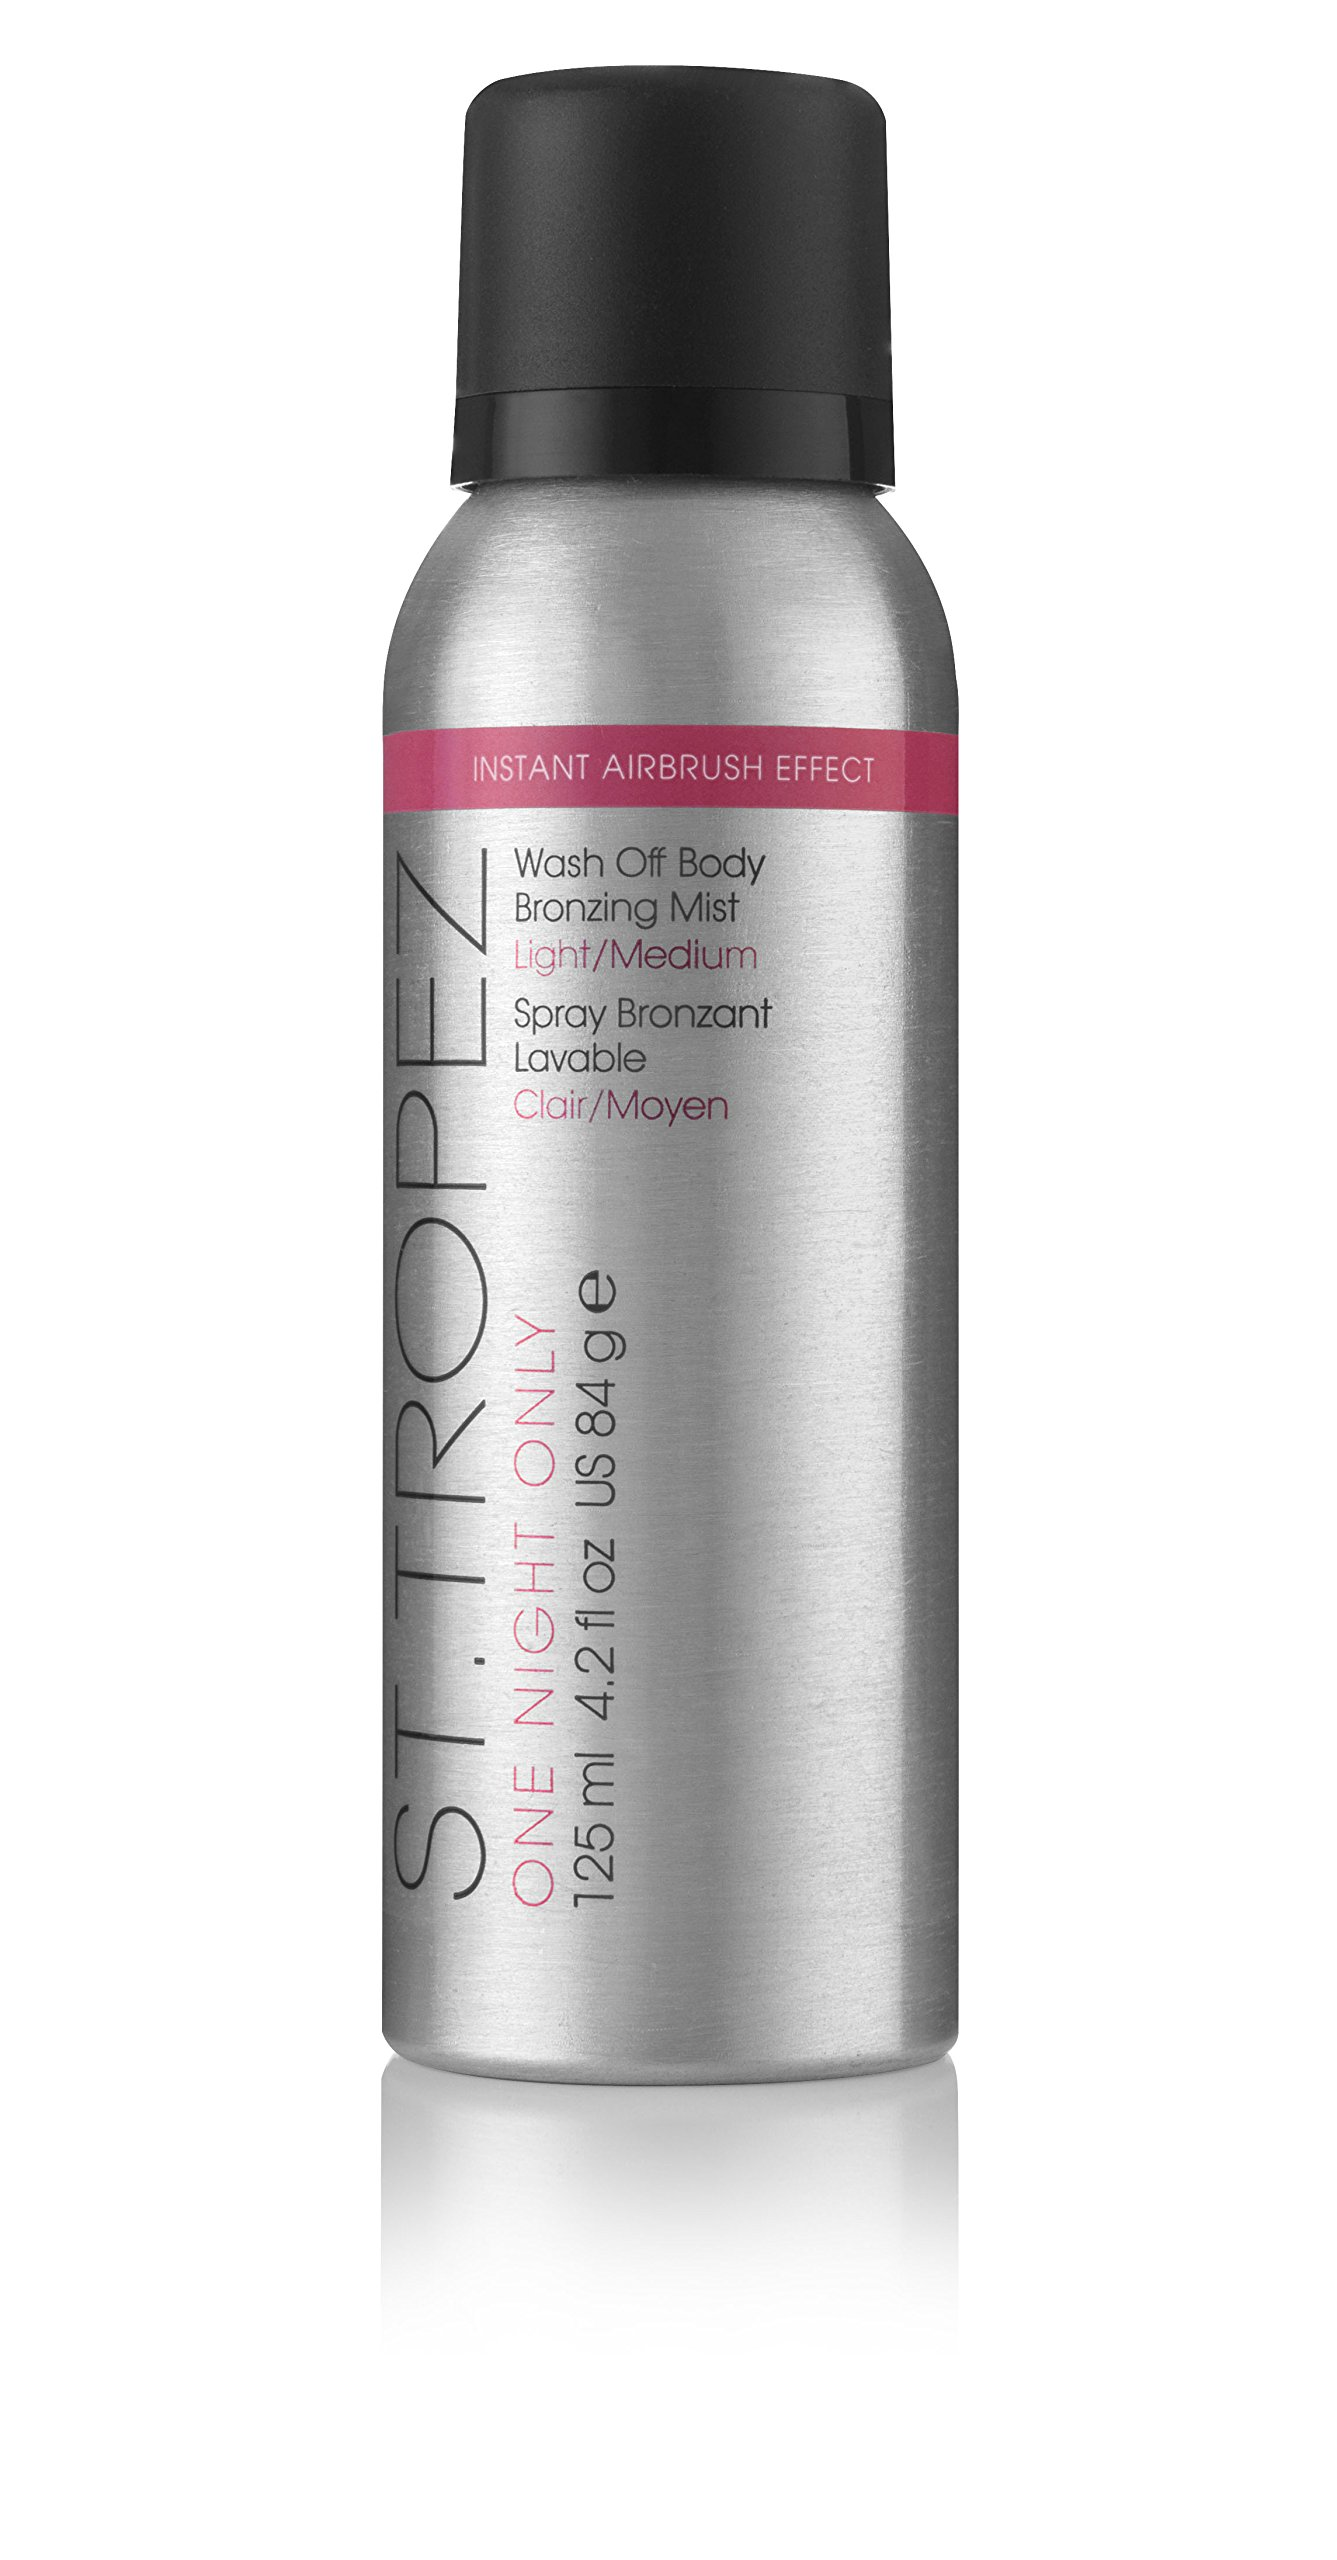 St. Tropez One Night Only Wash Off Body Bronzing Mist, Light/Medium